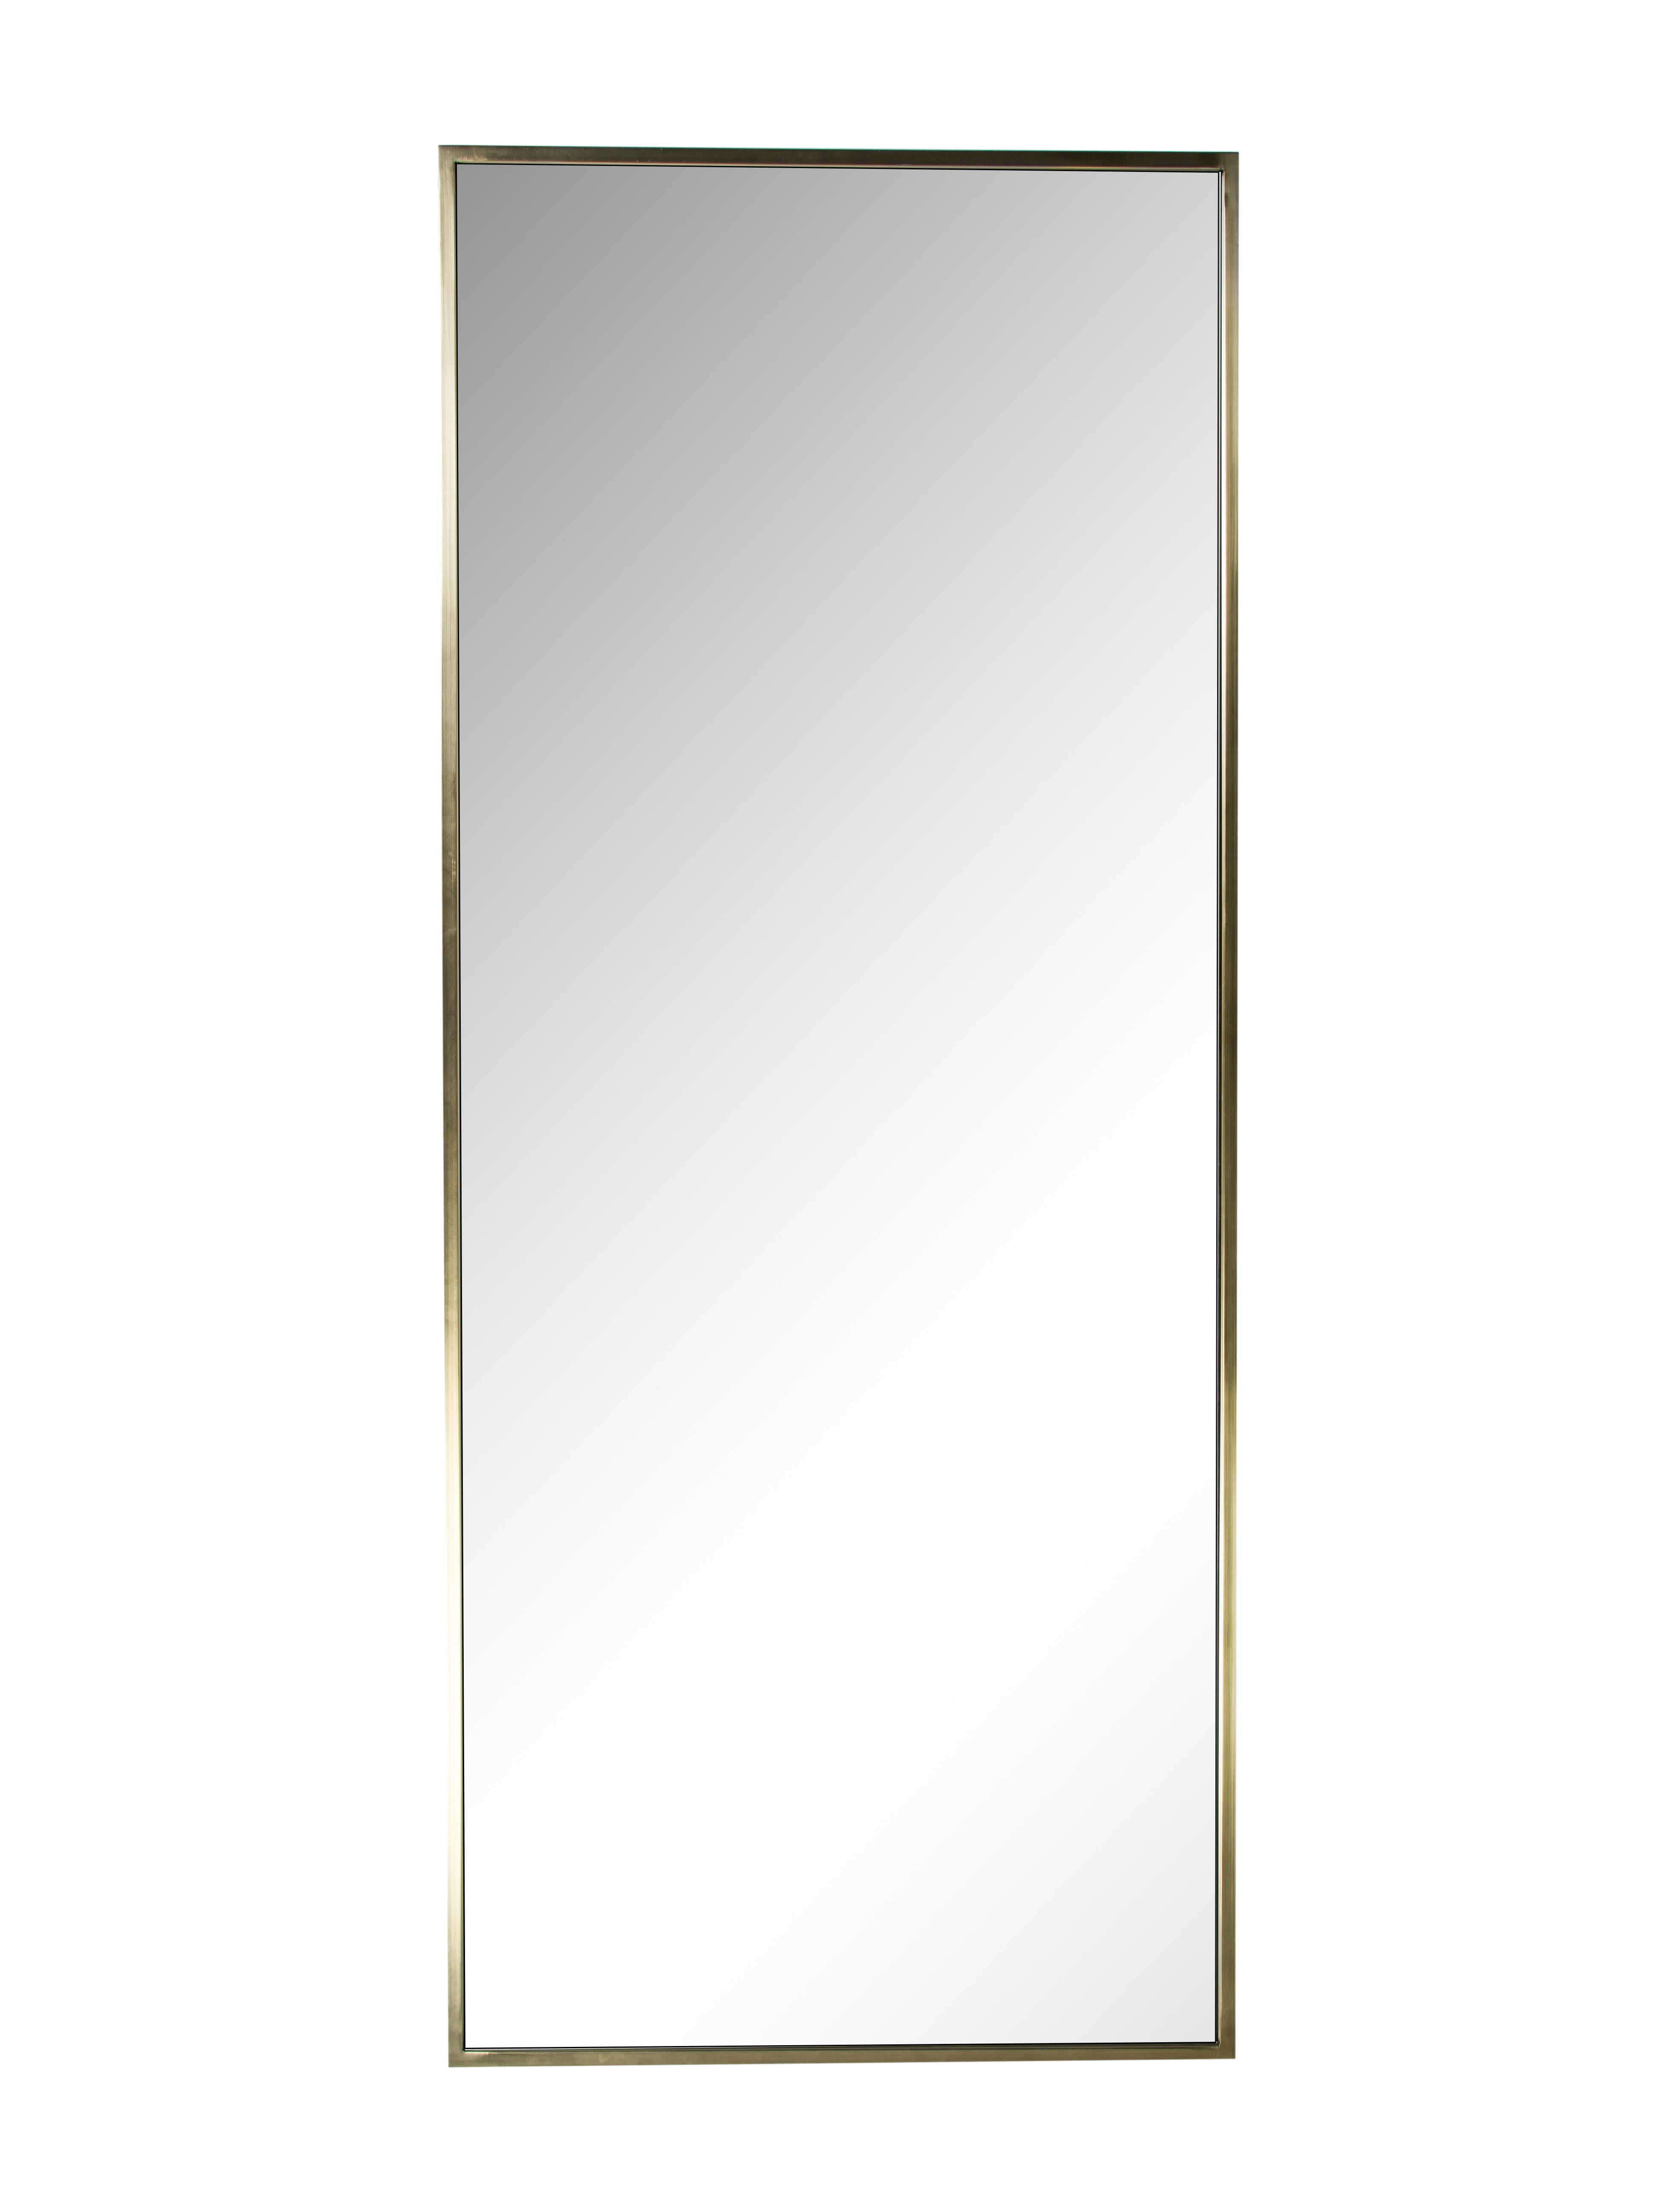 Full length wall mirror decor and accessories mir20105 for Full length wall mirror